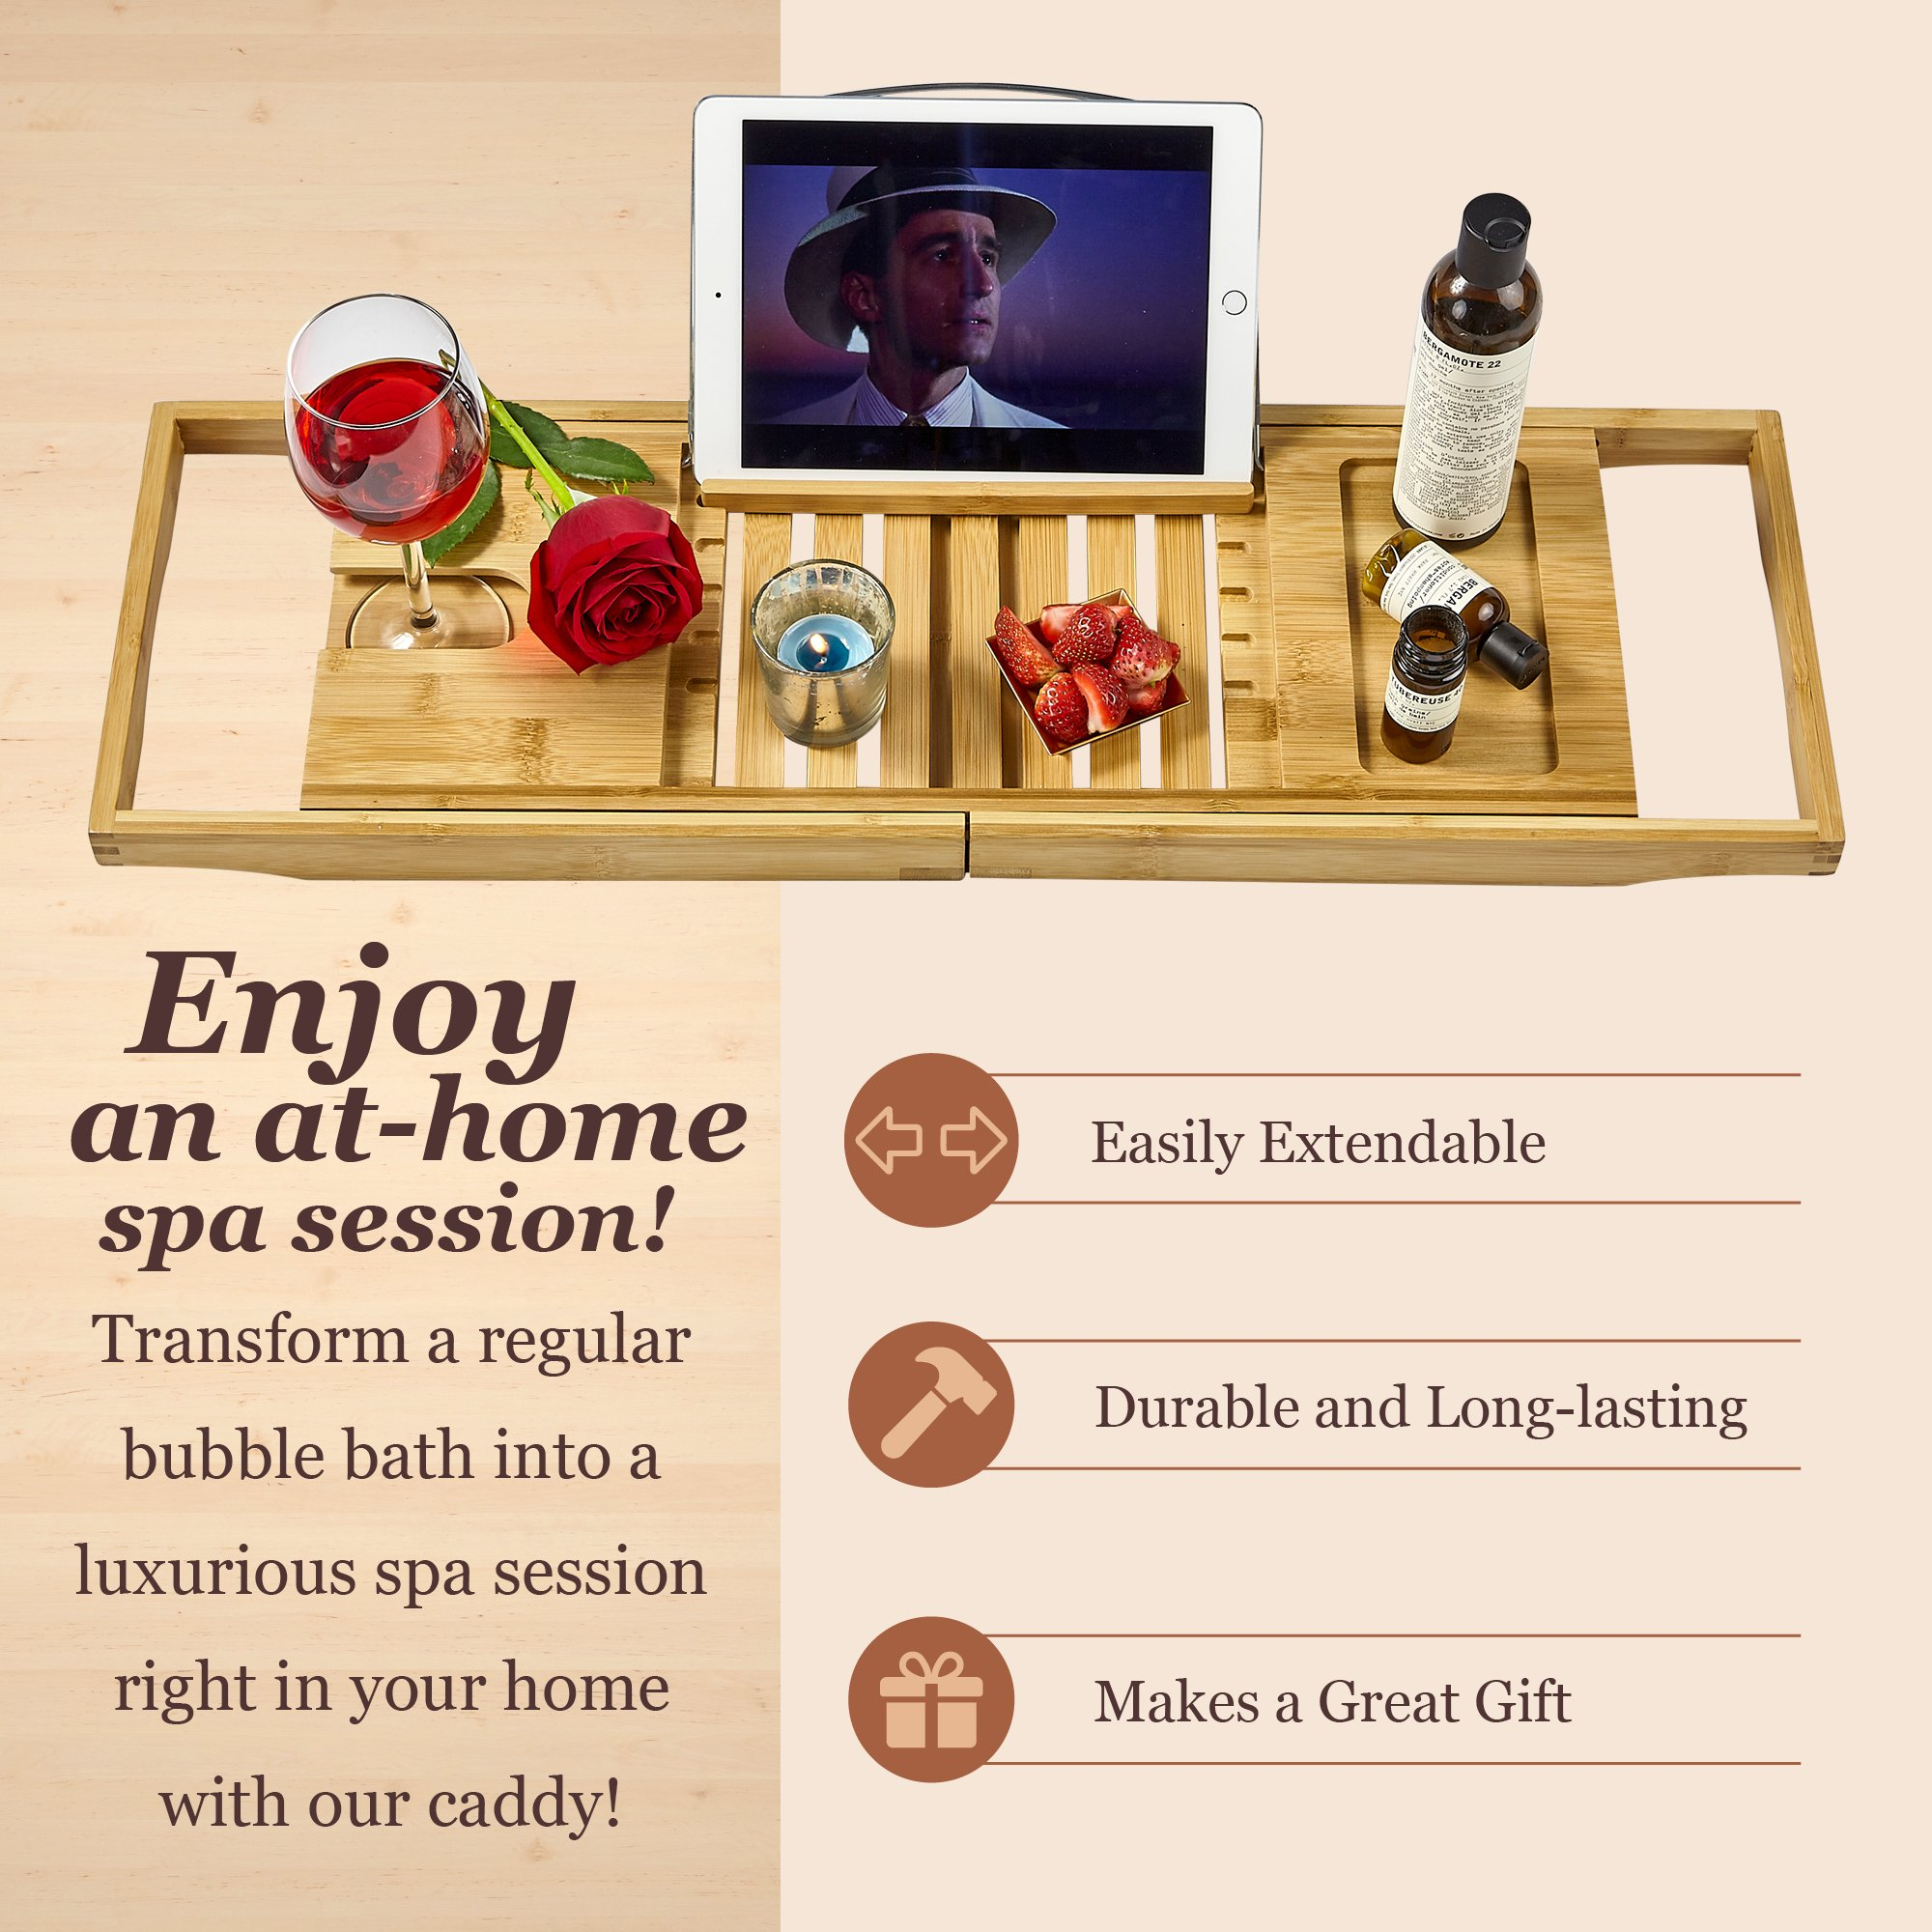 Tregini Luxury Bathtub Caddy - Extendable Bamboo Wood Bath Tray with Adjustable Book, iPad or Kindle Reading Rack - Wine Glass Holder - Cellphone or Tablet Slot by Tregini (Image #4)